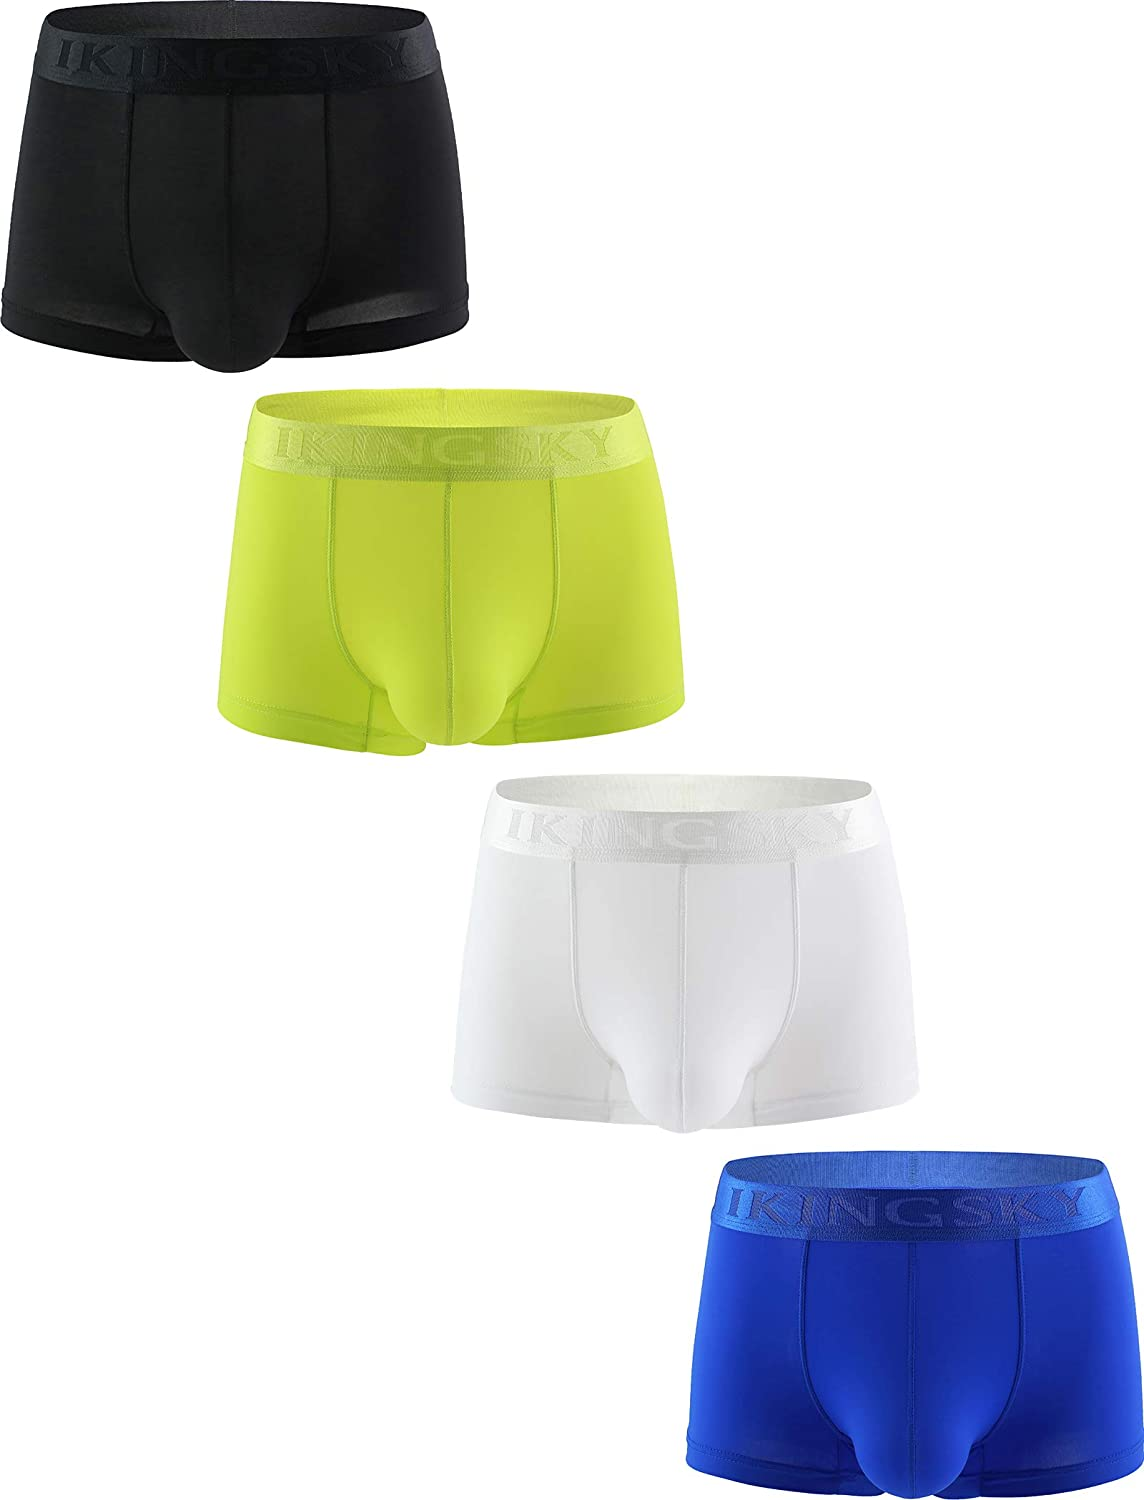 IKINGSKY Men's Spotry Boxer Shorts Sexy U-Hance Pouch Underwear Low Rise Pouch Under Panties